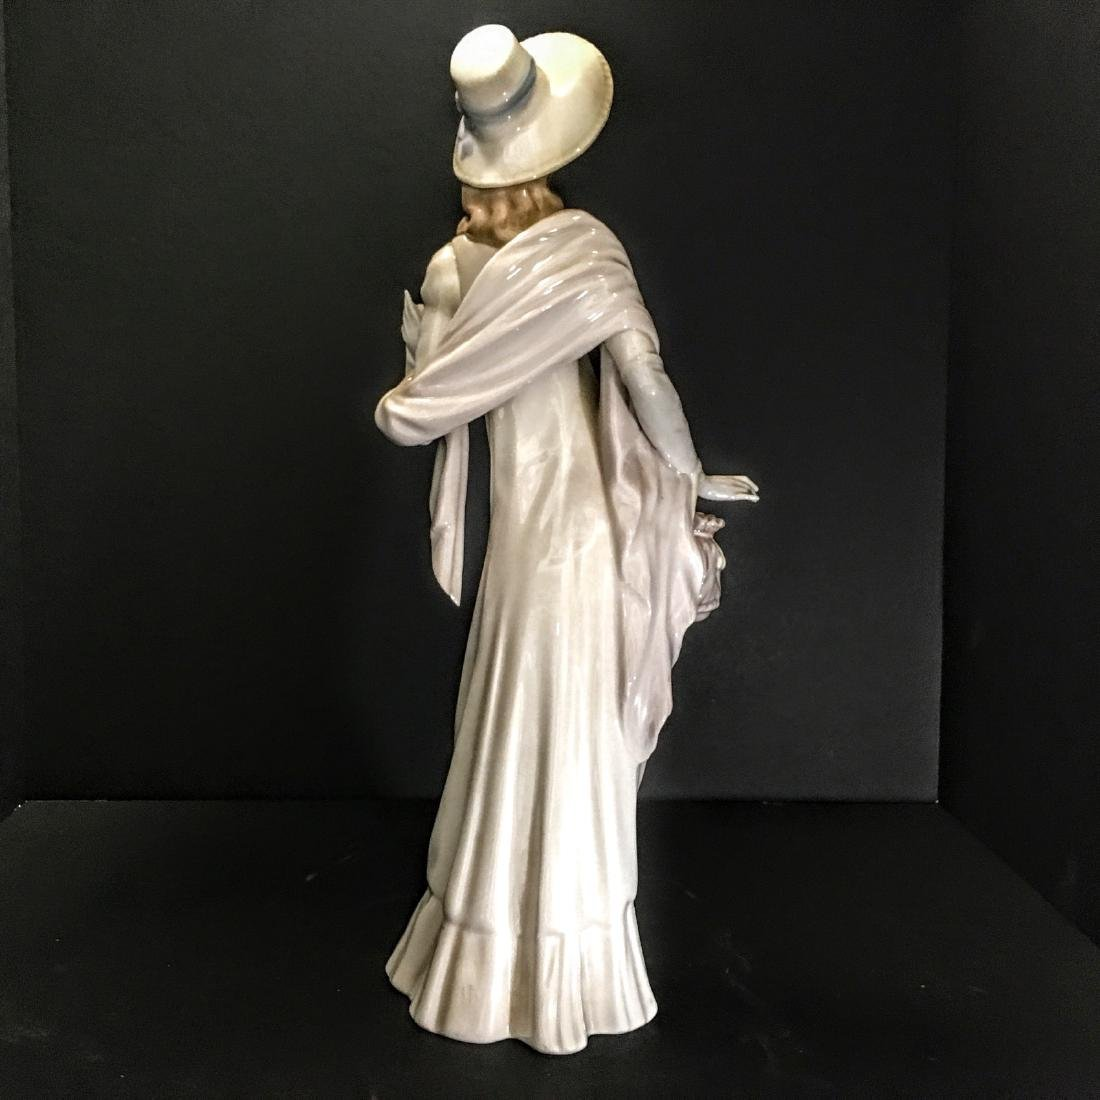 Lladro Figurine - Girl with hat and purse. - 2